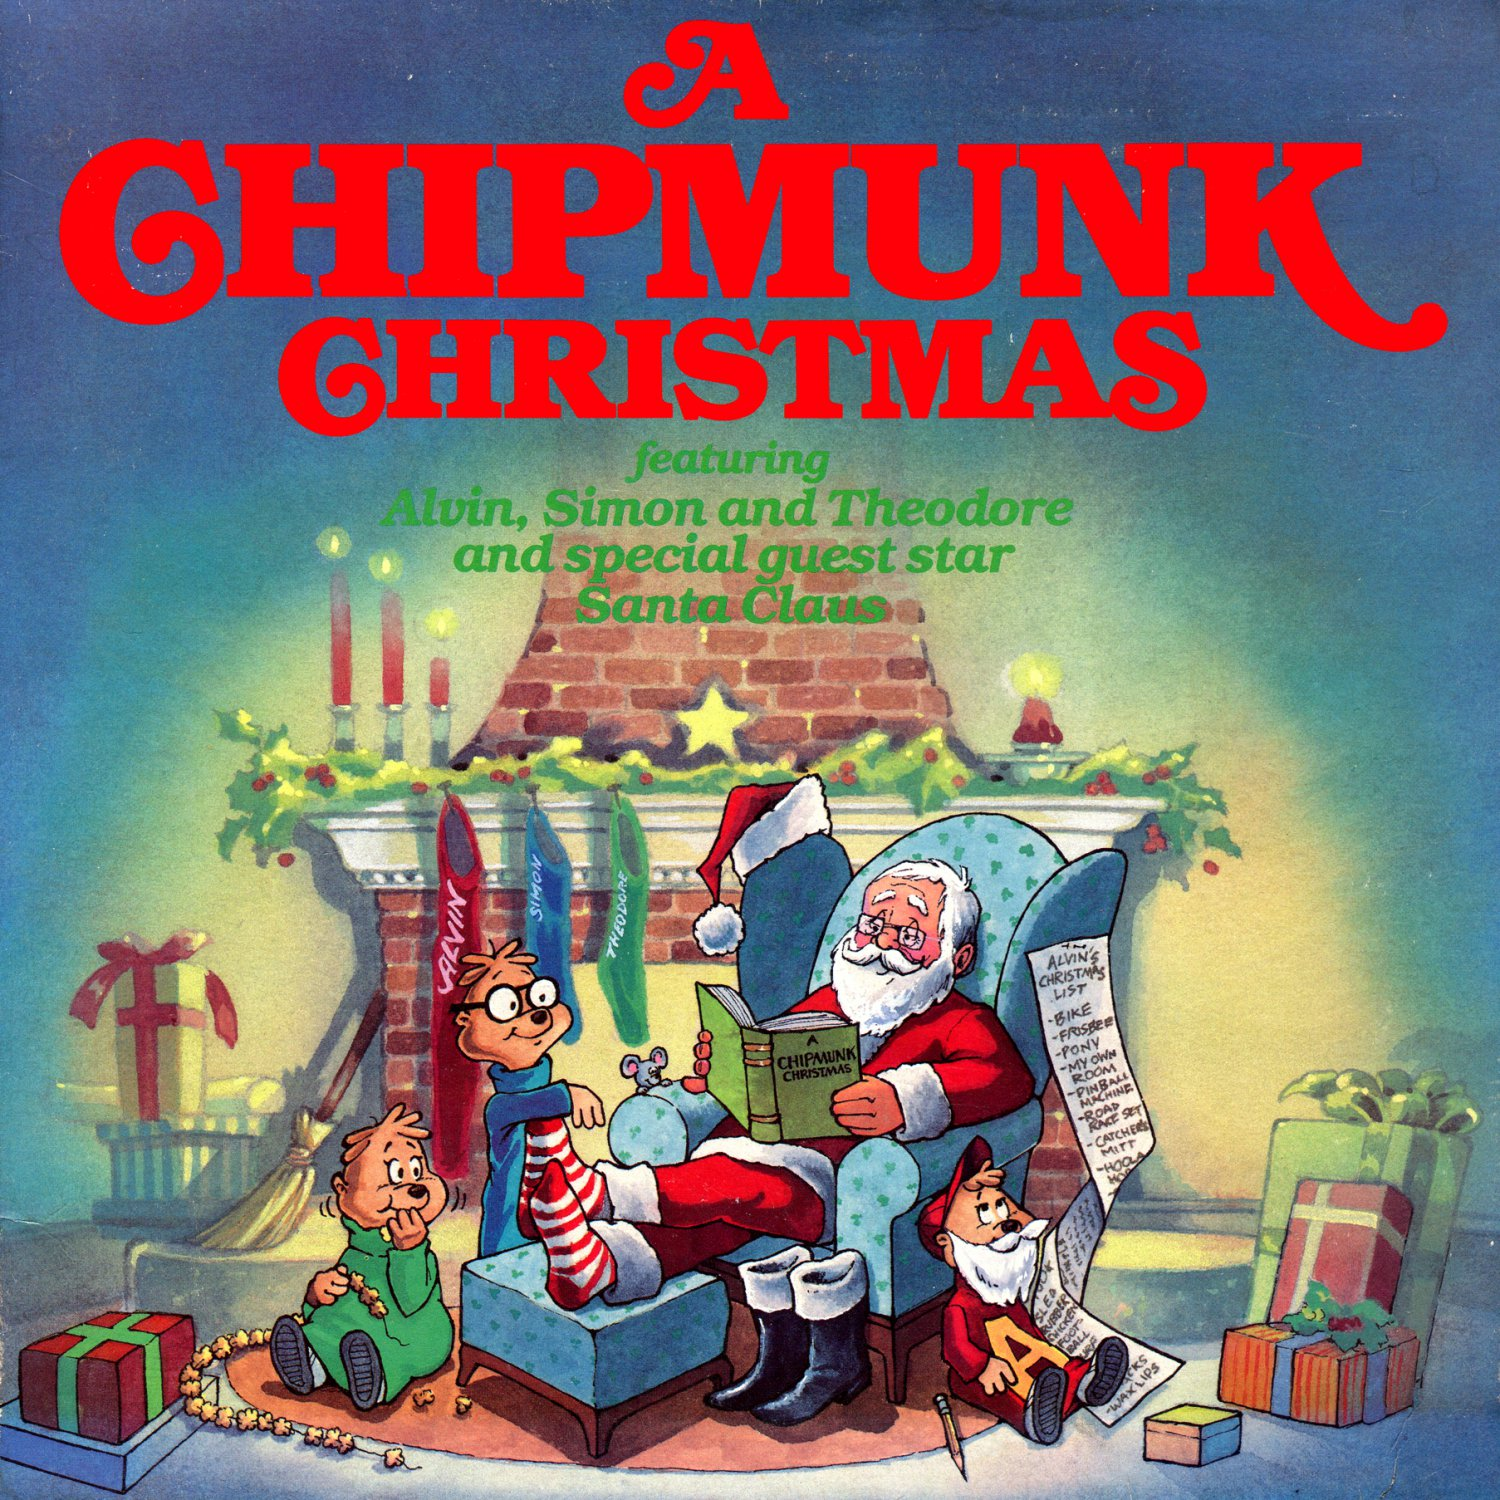 A Chipmunk Christmas (1981) - Alvin & The Chipmunks, Holiday Music Collection LP/CD